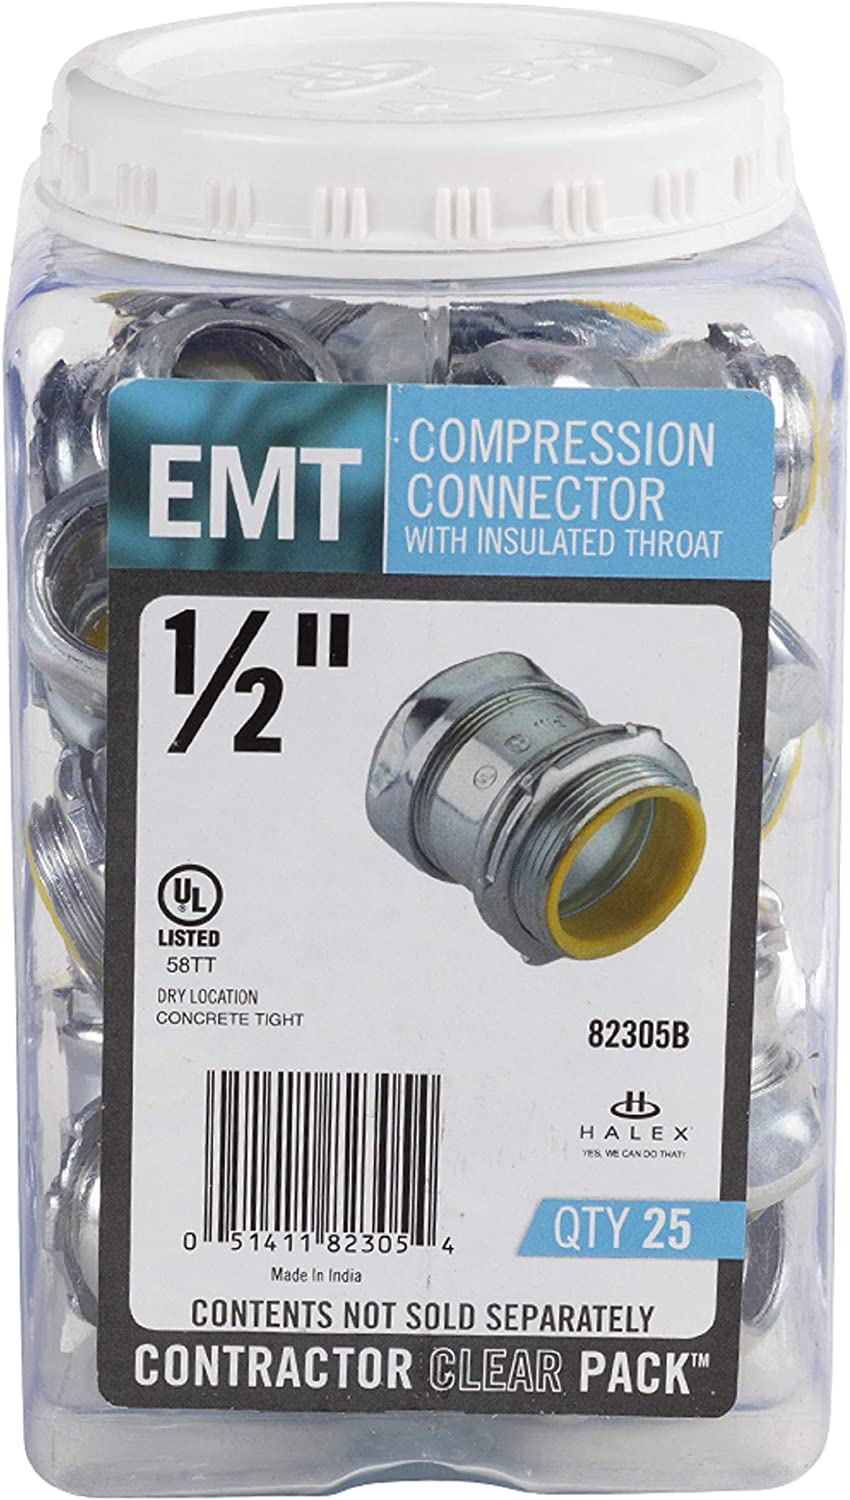 Halex Electrical Metallic Tube 3 per pack Compression Connectors with Insulated Throats 28232 EMT 3//4 in